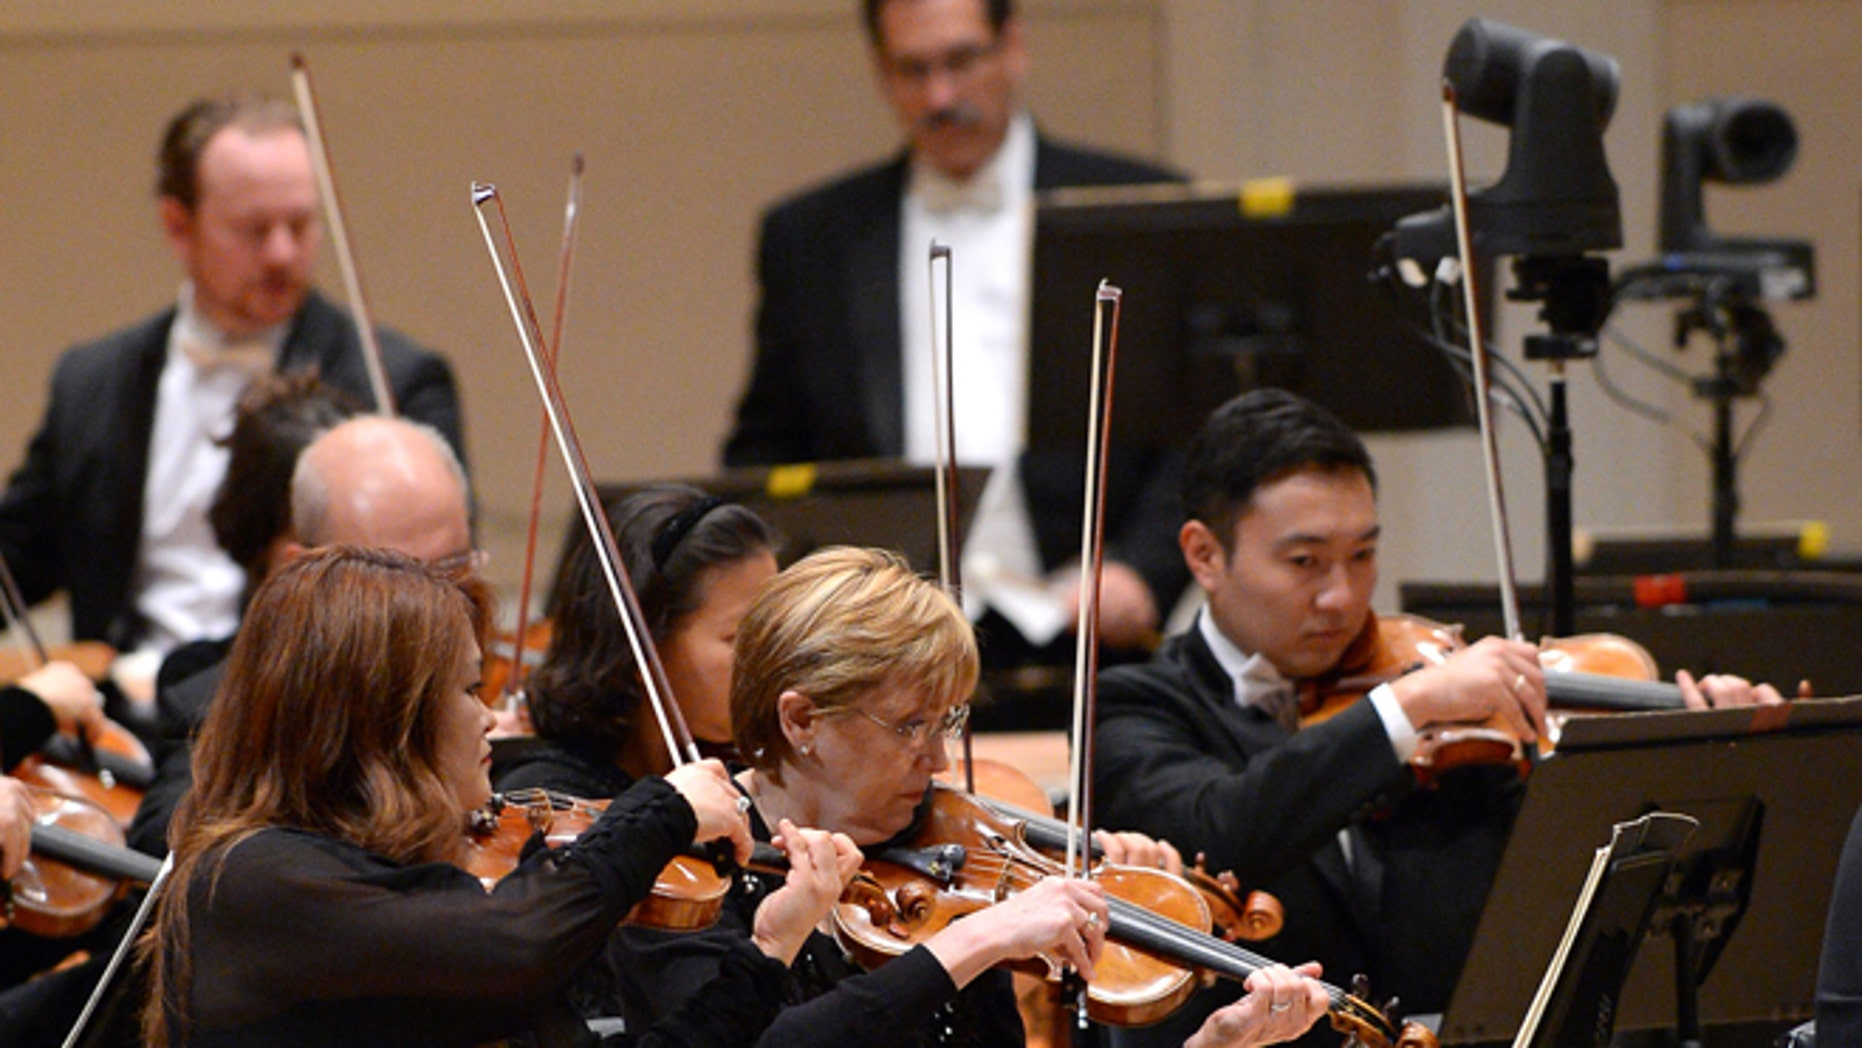 NEW YORK, NY - OCTOBER 07:  The New York Philharmonic performs on stage during the Carnegie Hall 125th season opening night gala at Carnegie Hall on October 7, 2015 in New York City.  (Photo by Andrew Toth/Getty Images)